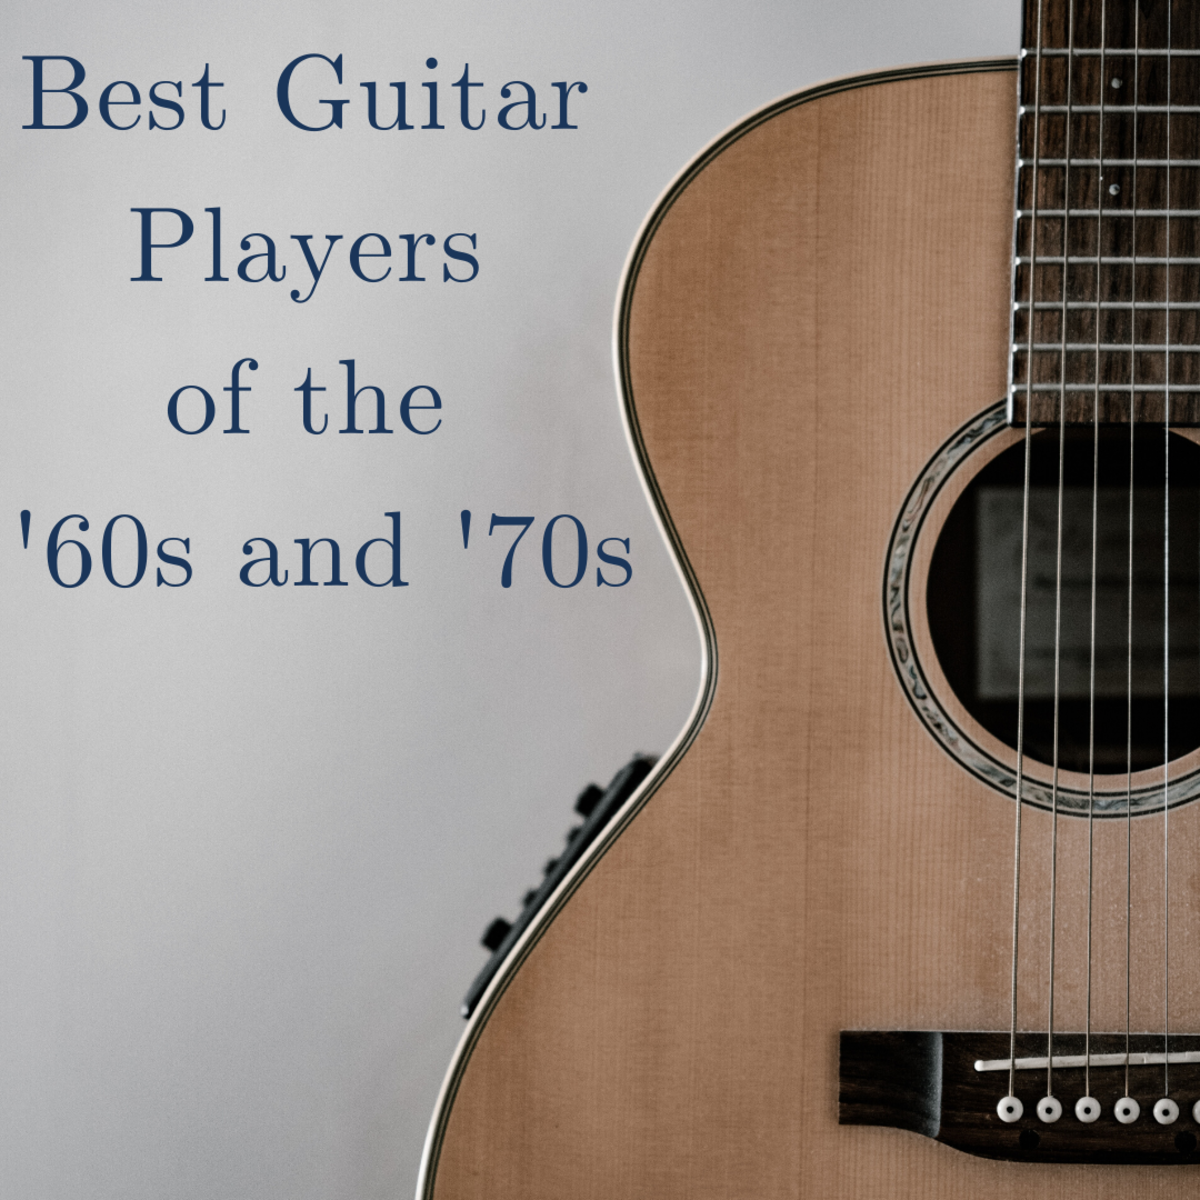 100 Best Guitar Players of the '60s and '70s